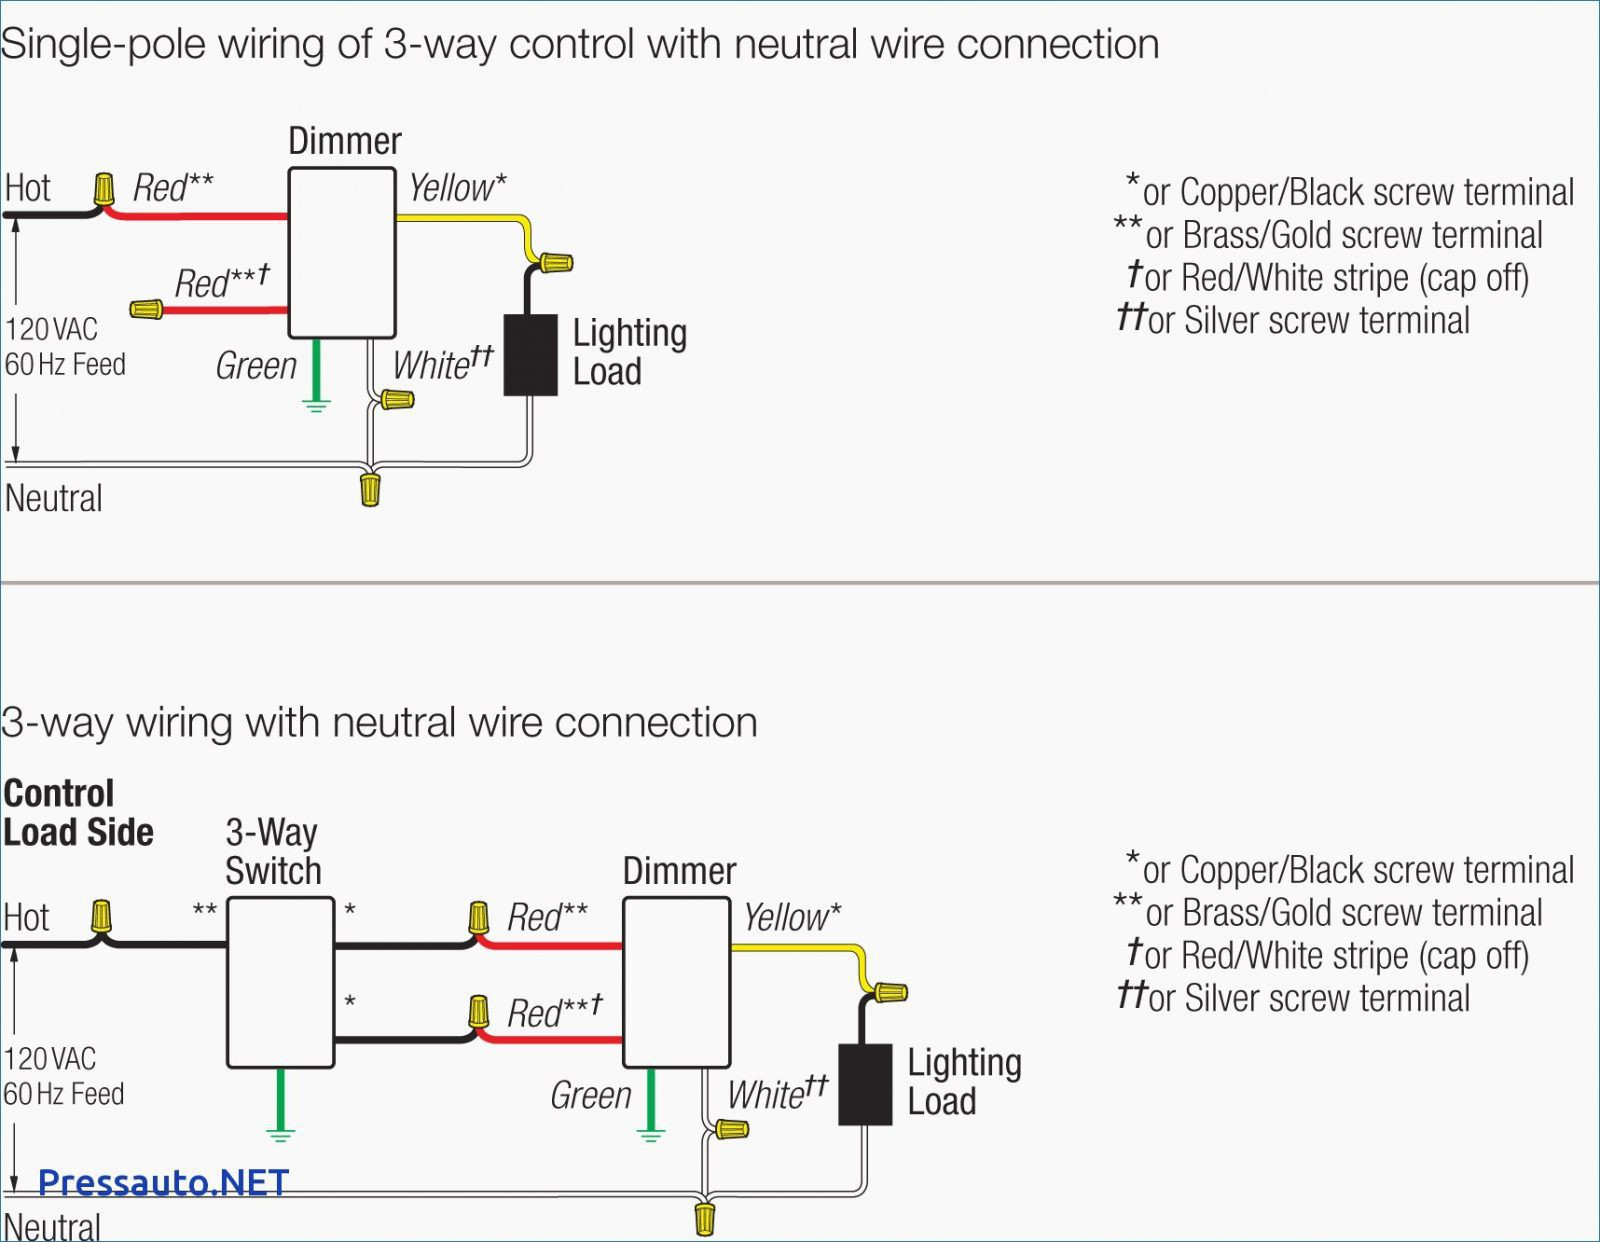 Universal Ballast Wiring Diagrams Library. Sylvania Qtp 4x32t8 Unv Isn Sc Wiring Diagram Collectionfluorescent Ballast Beautiful Fluorescent. Wiring. 2bulb Wh2 120 L Wiring Diagram At Scoala.co